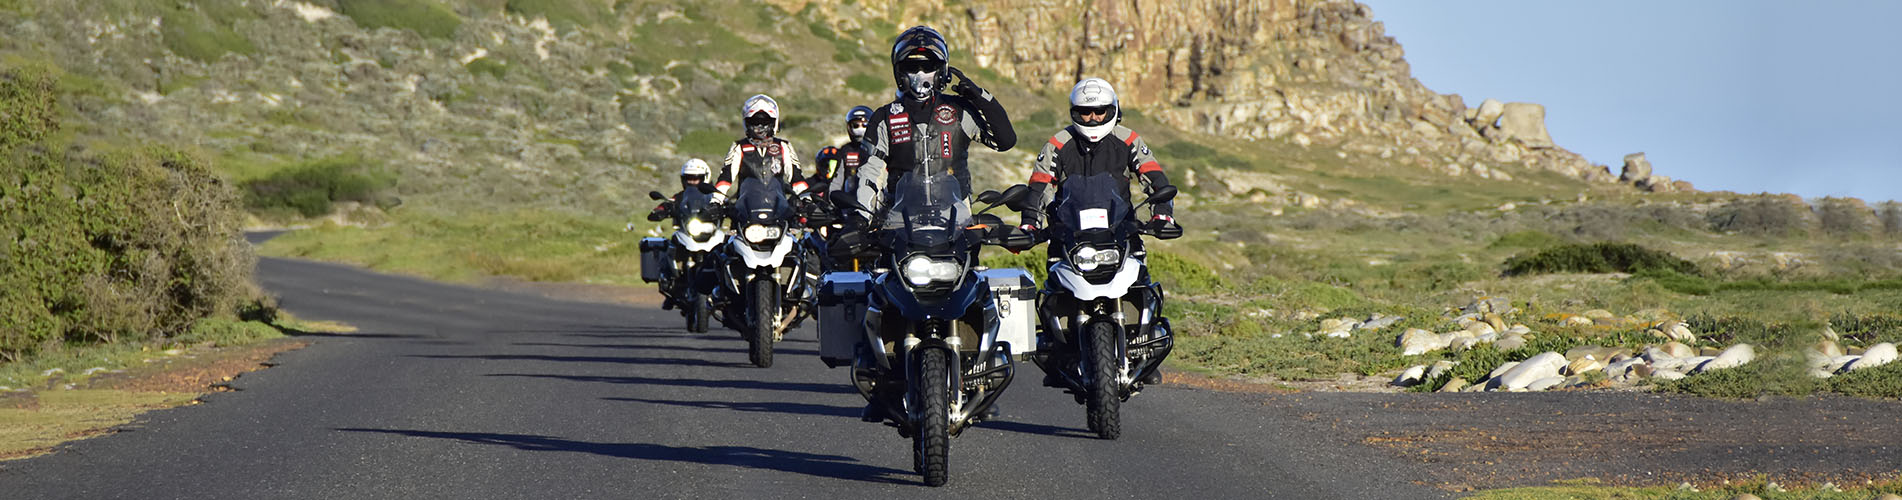 BMW Motorcycle Hire & Tours